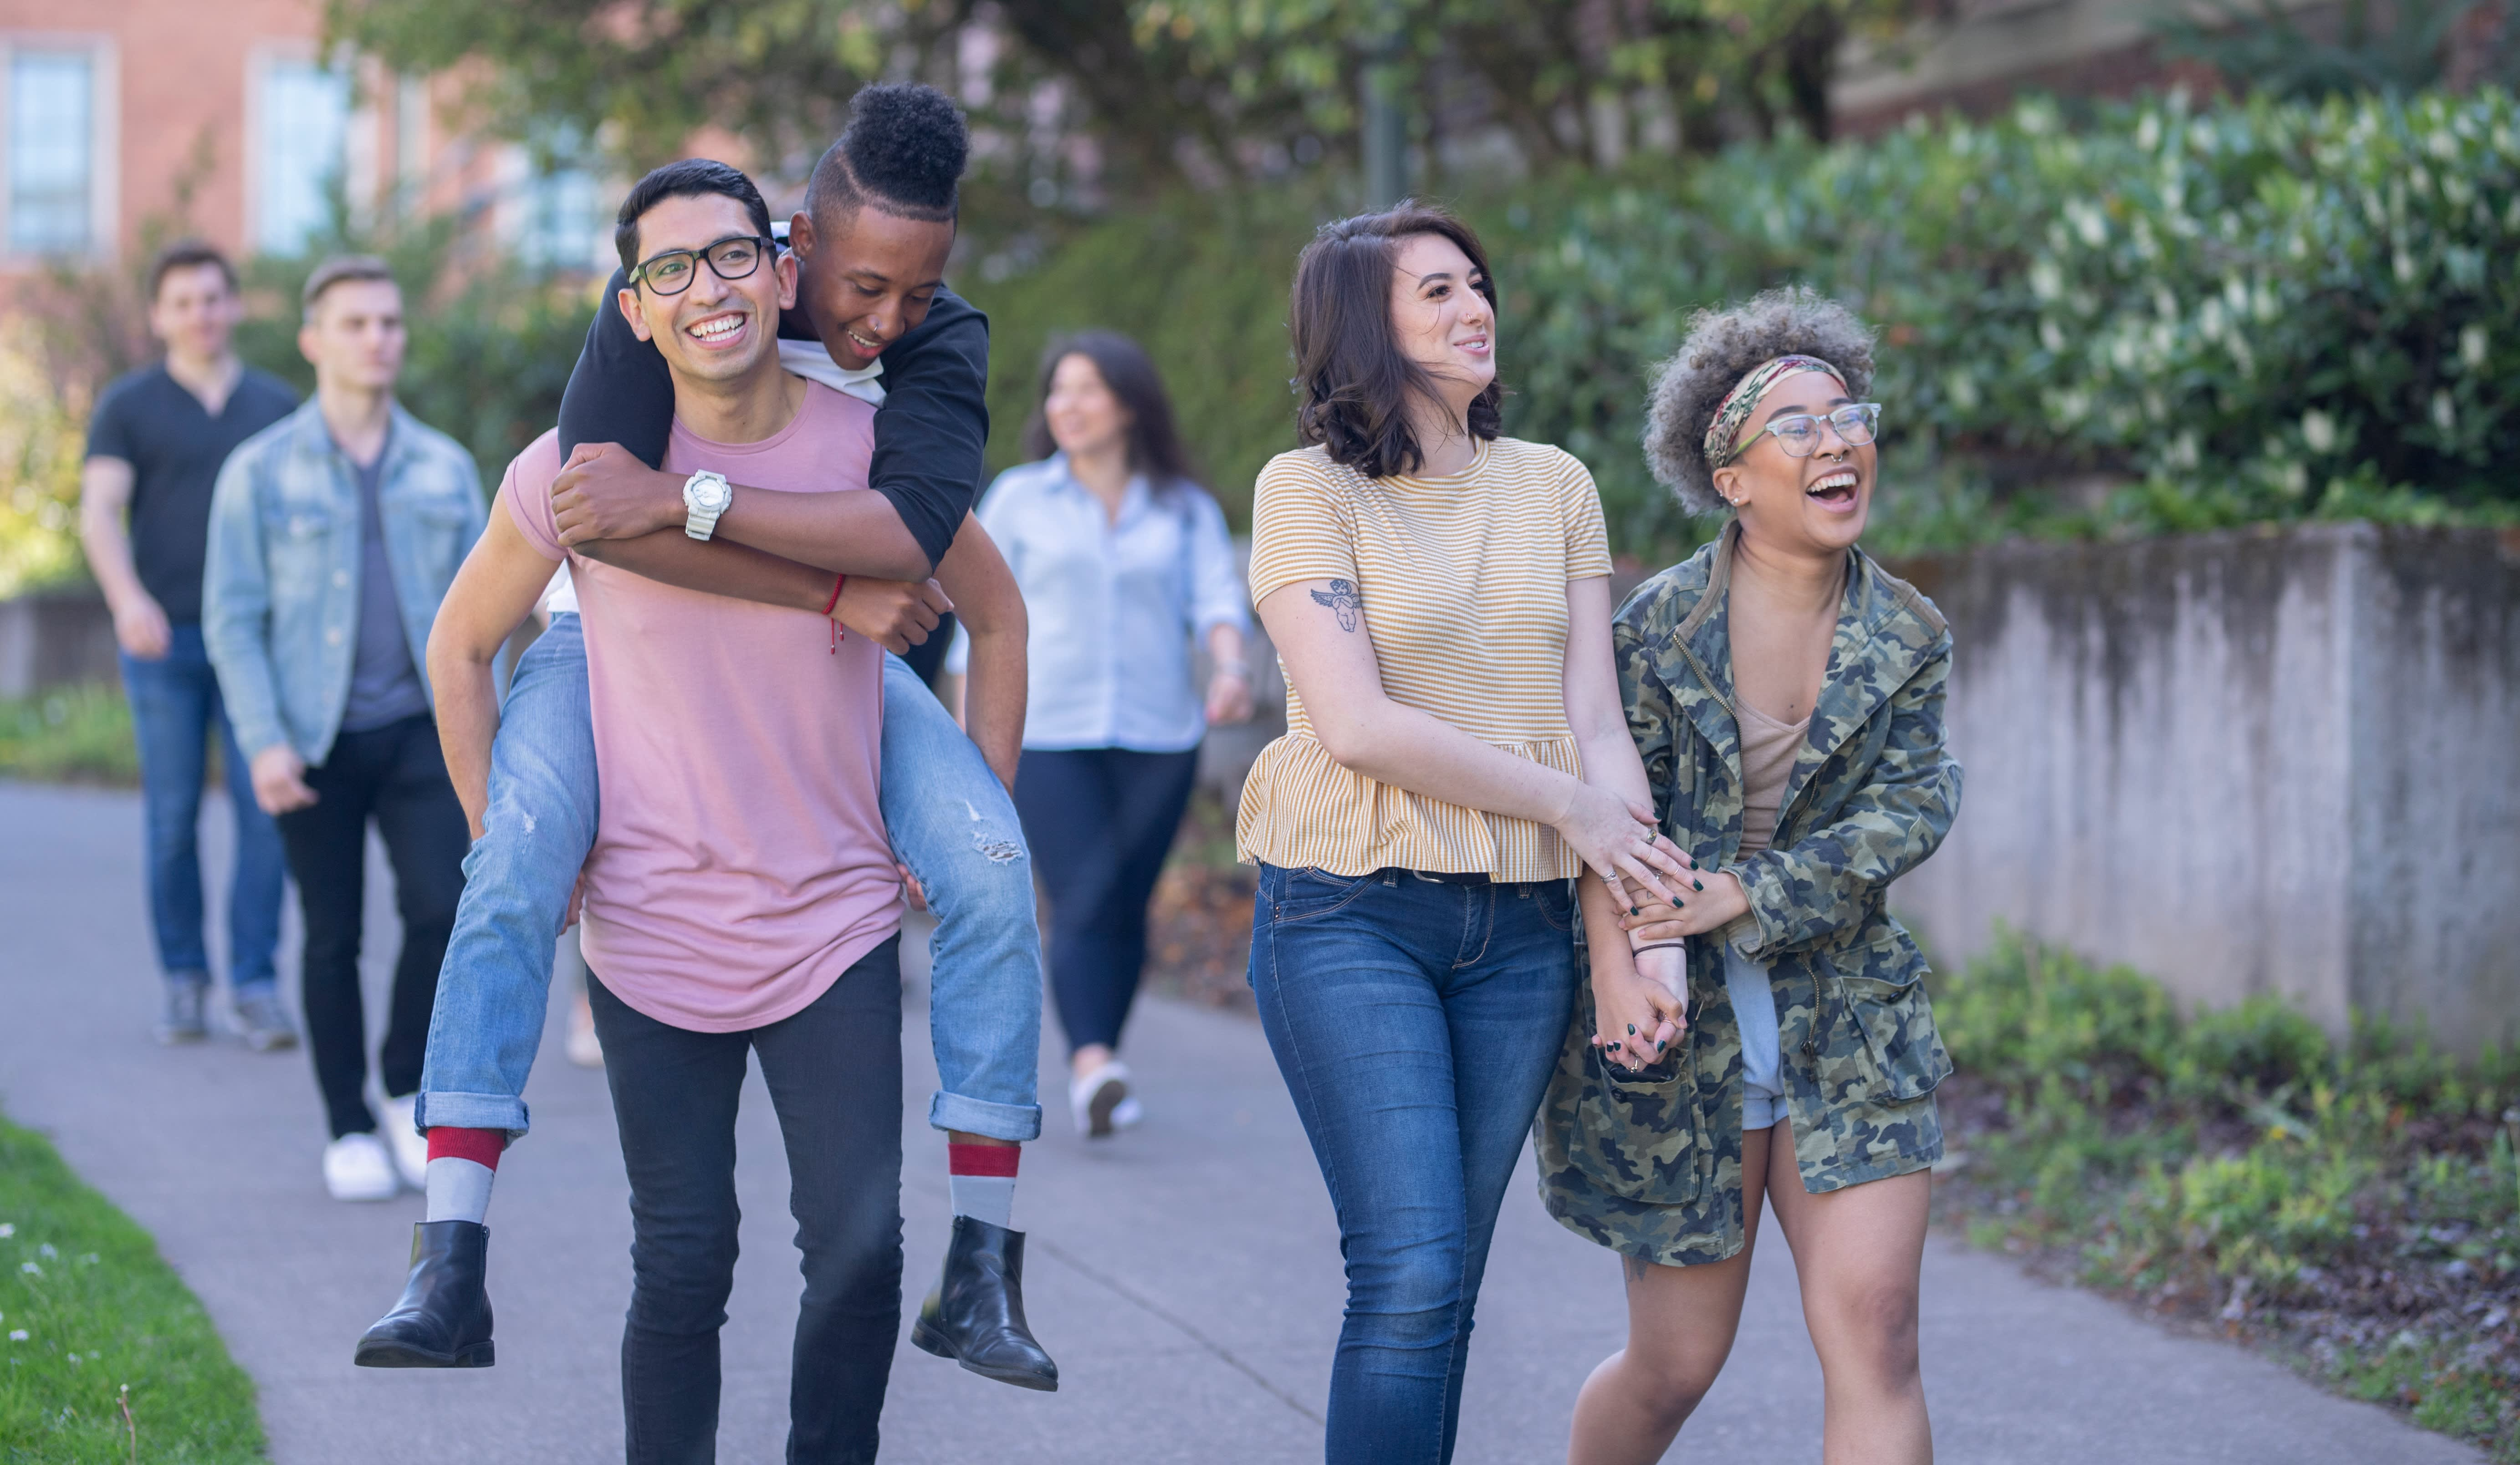 Two couples walk through a college campus, with one doing a piggy back ride